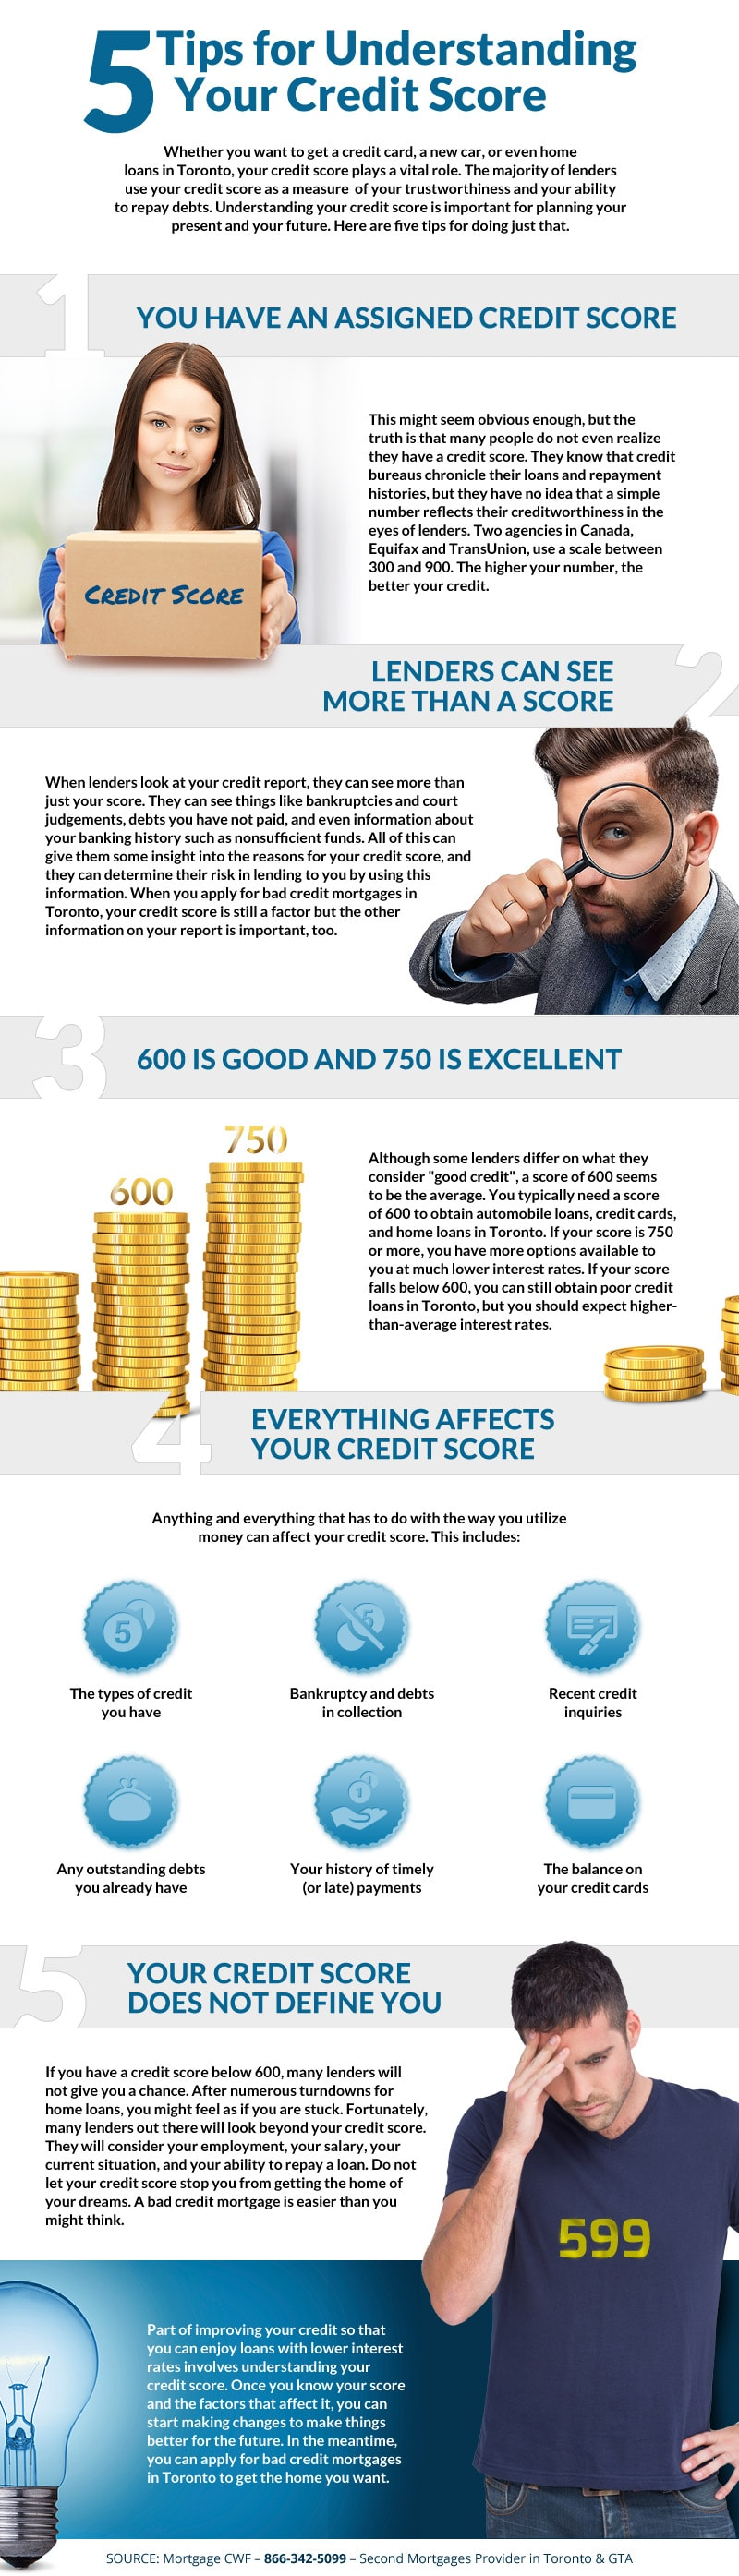 How to Understand Your Credit Score - Infographic